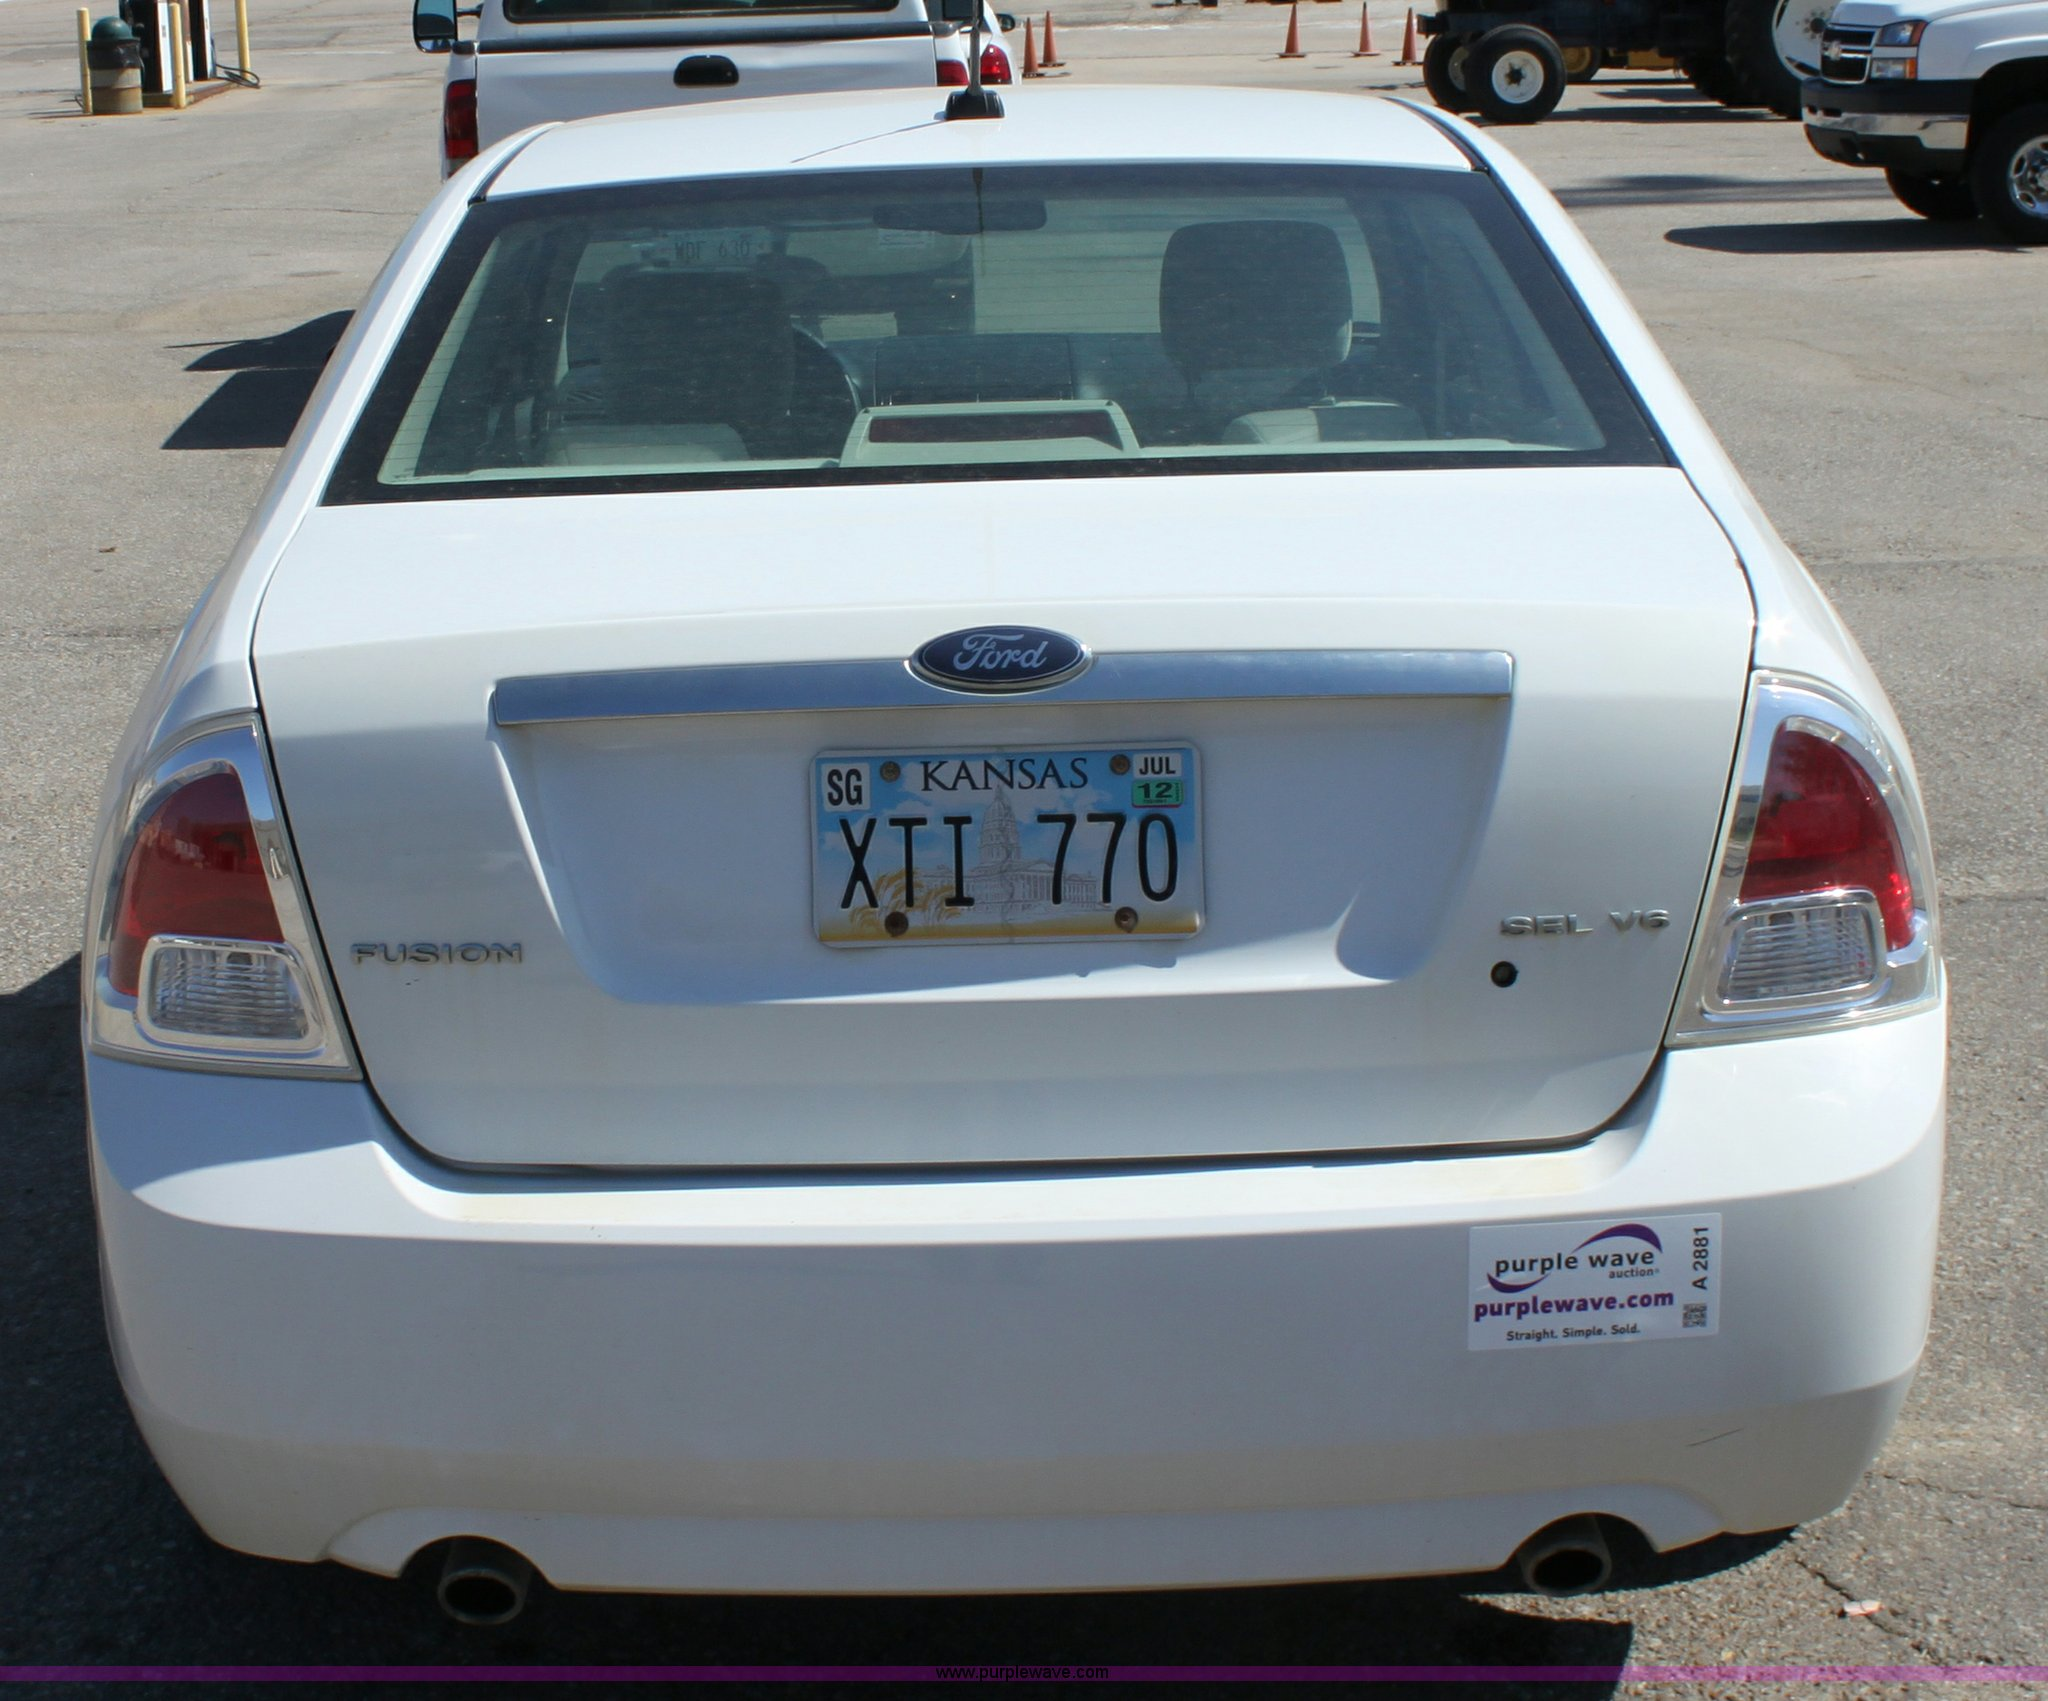 2007 Ford Fusion Sel Item A2881 Sold October 25 Kansas Lights Full Size In New Window